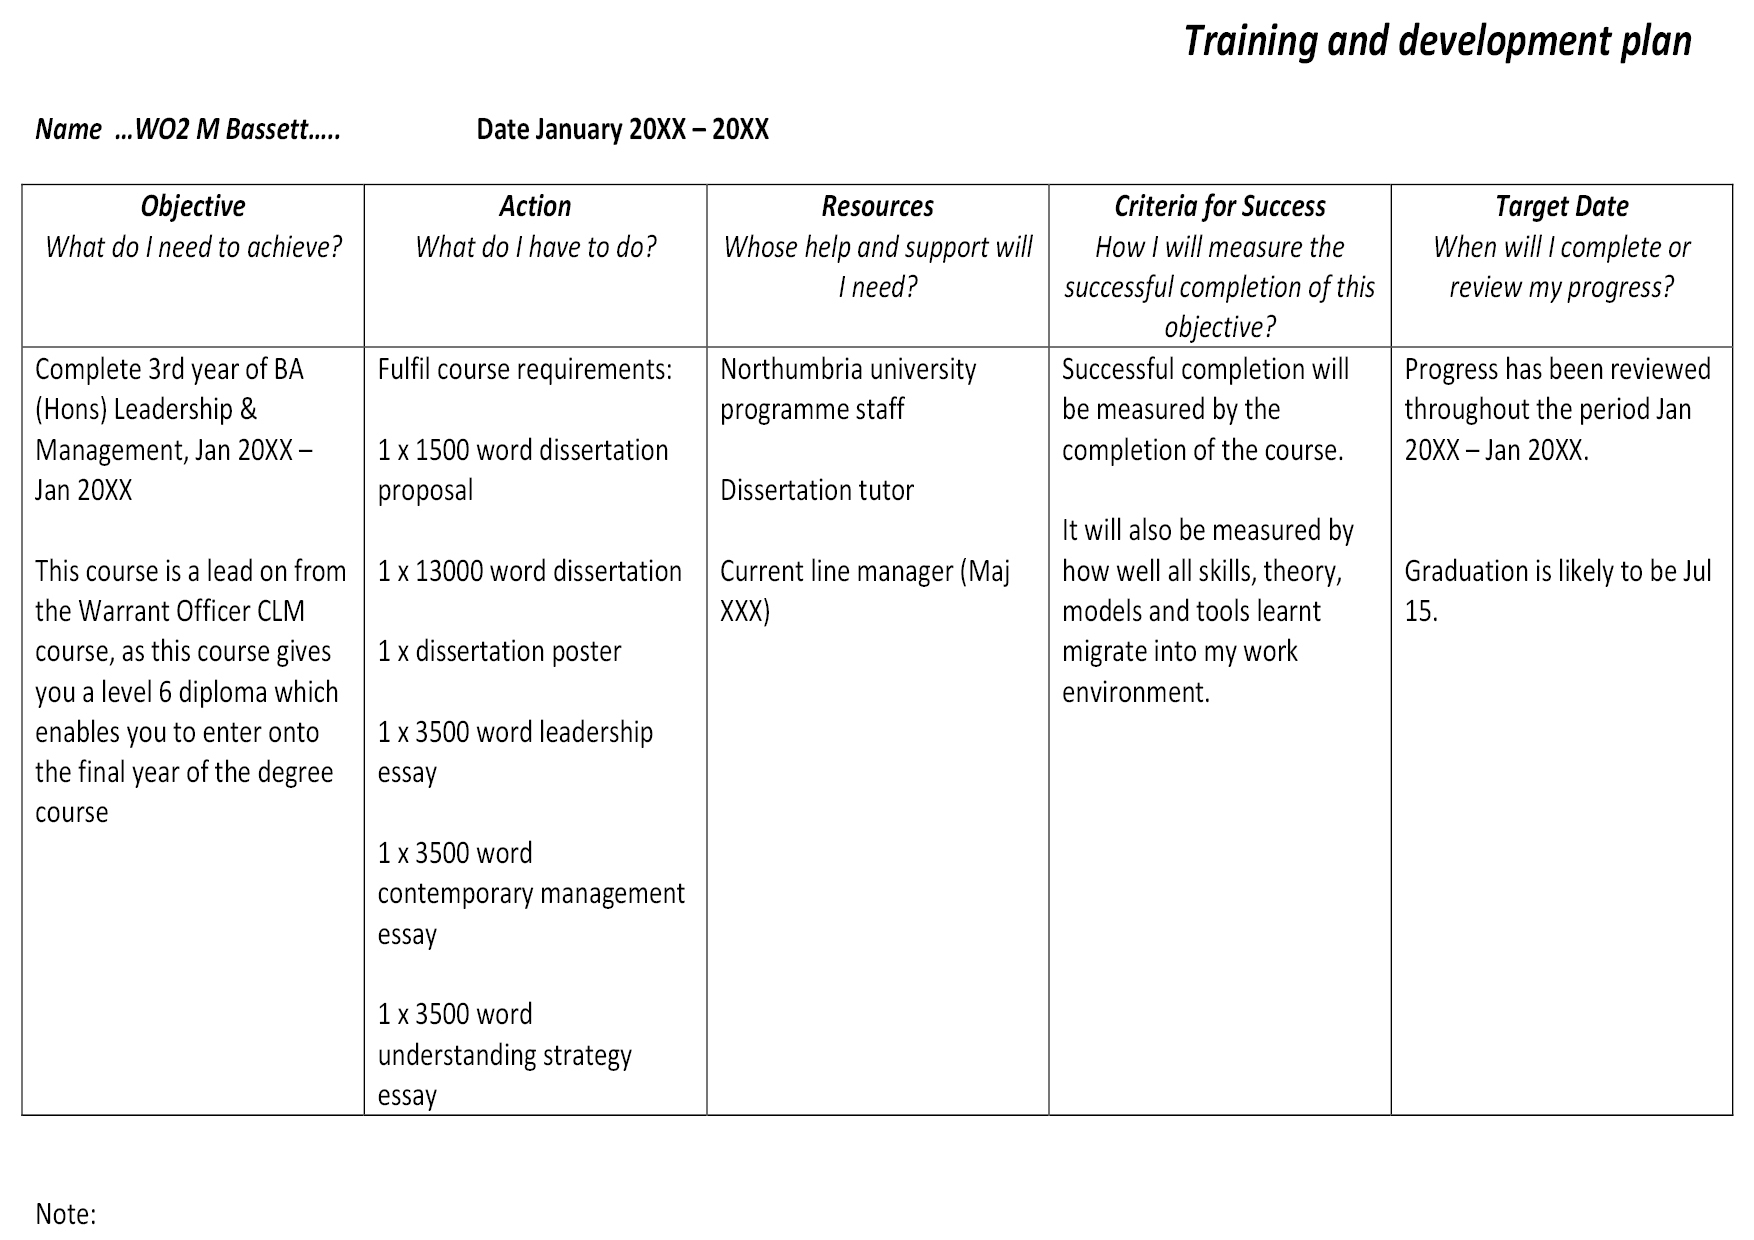 development personal plan cpd managers example examples pdp template re individual own self pdf website samples recent take visit yourself